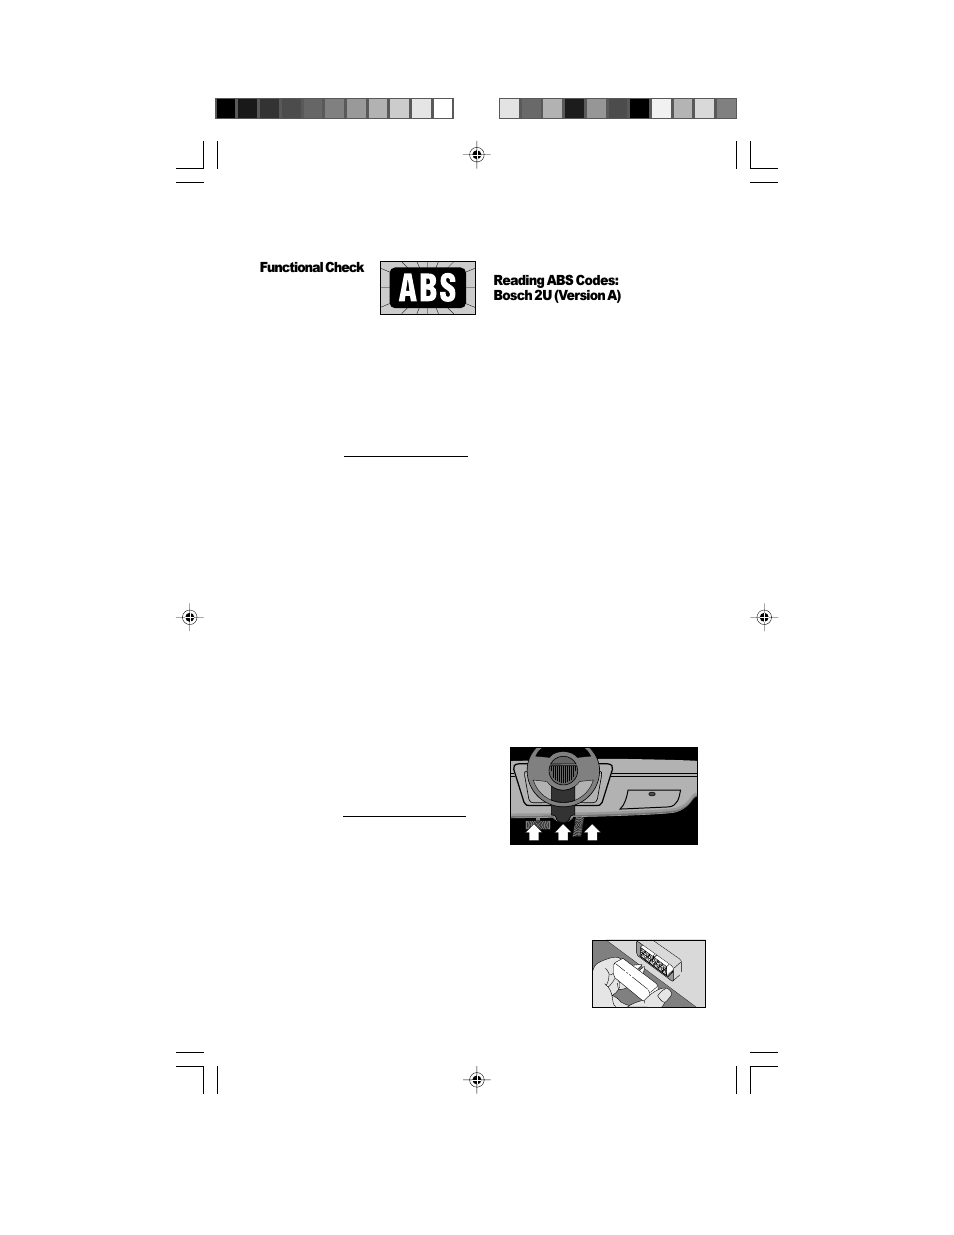 actron gm code scanner cp9001 user manual page 59 98 original rh manualsdir com actron cp9125 user manual actron cp7665 user manual